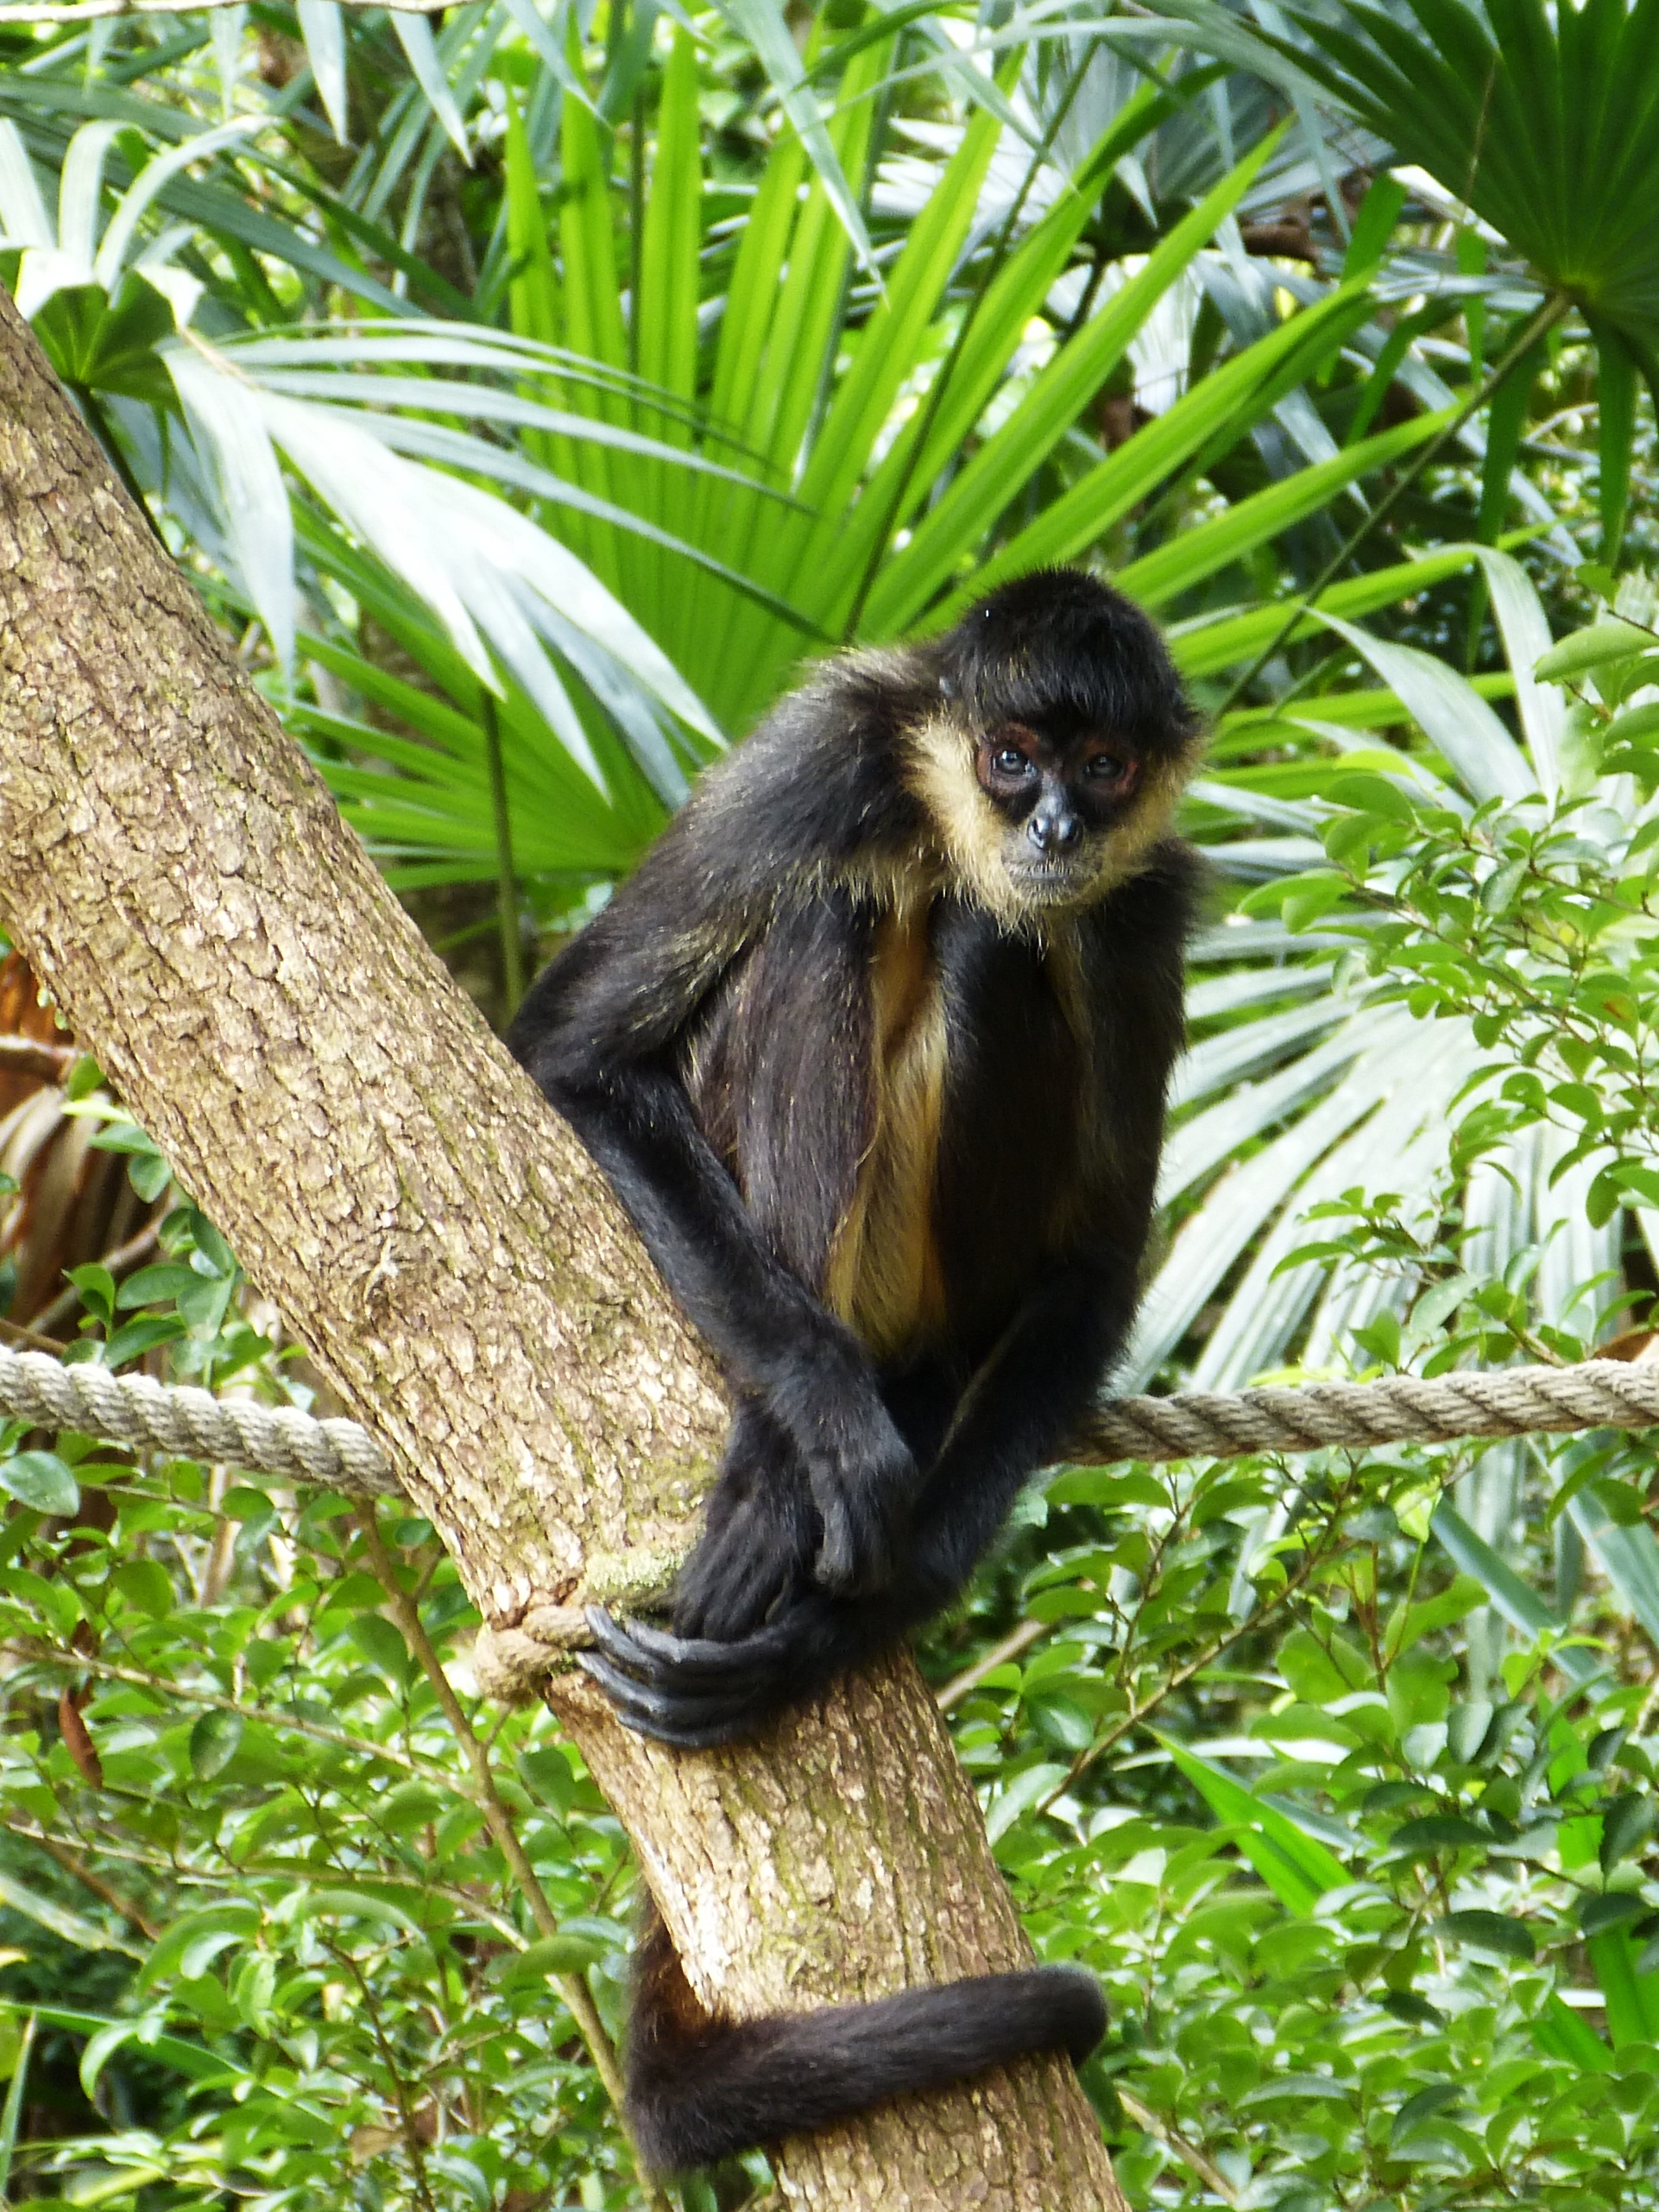 Spider Monkey at zoo